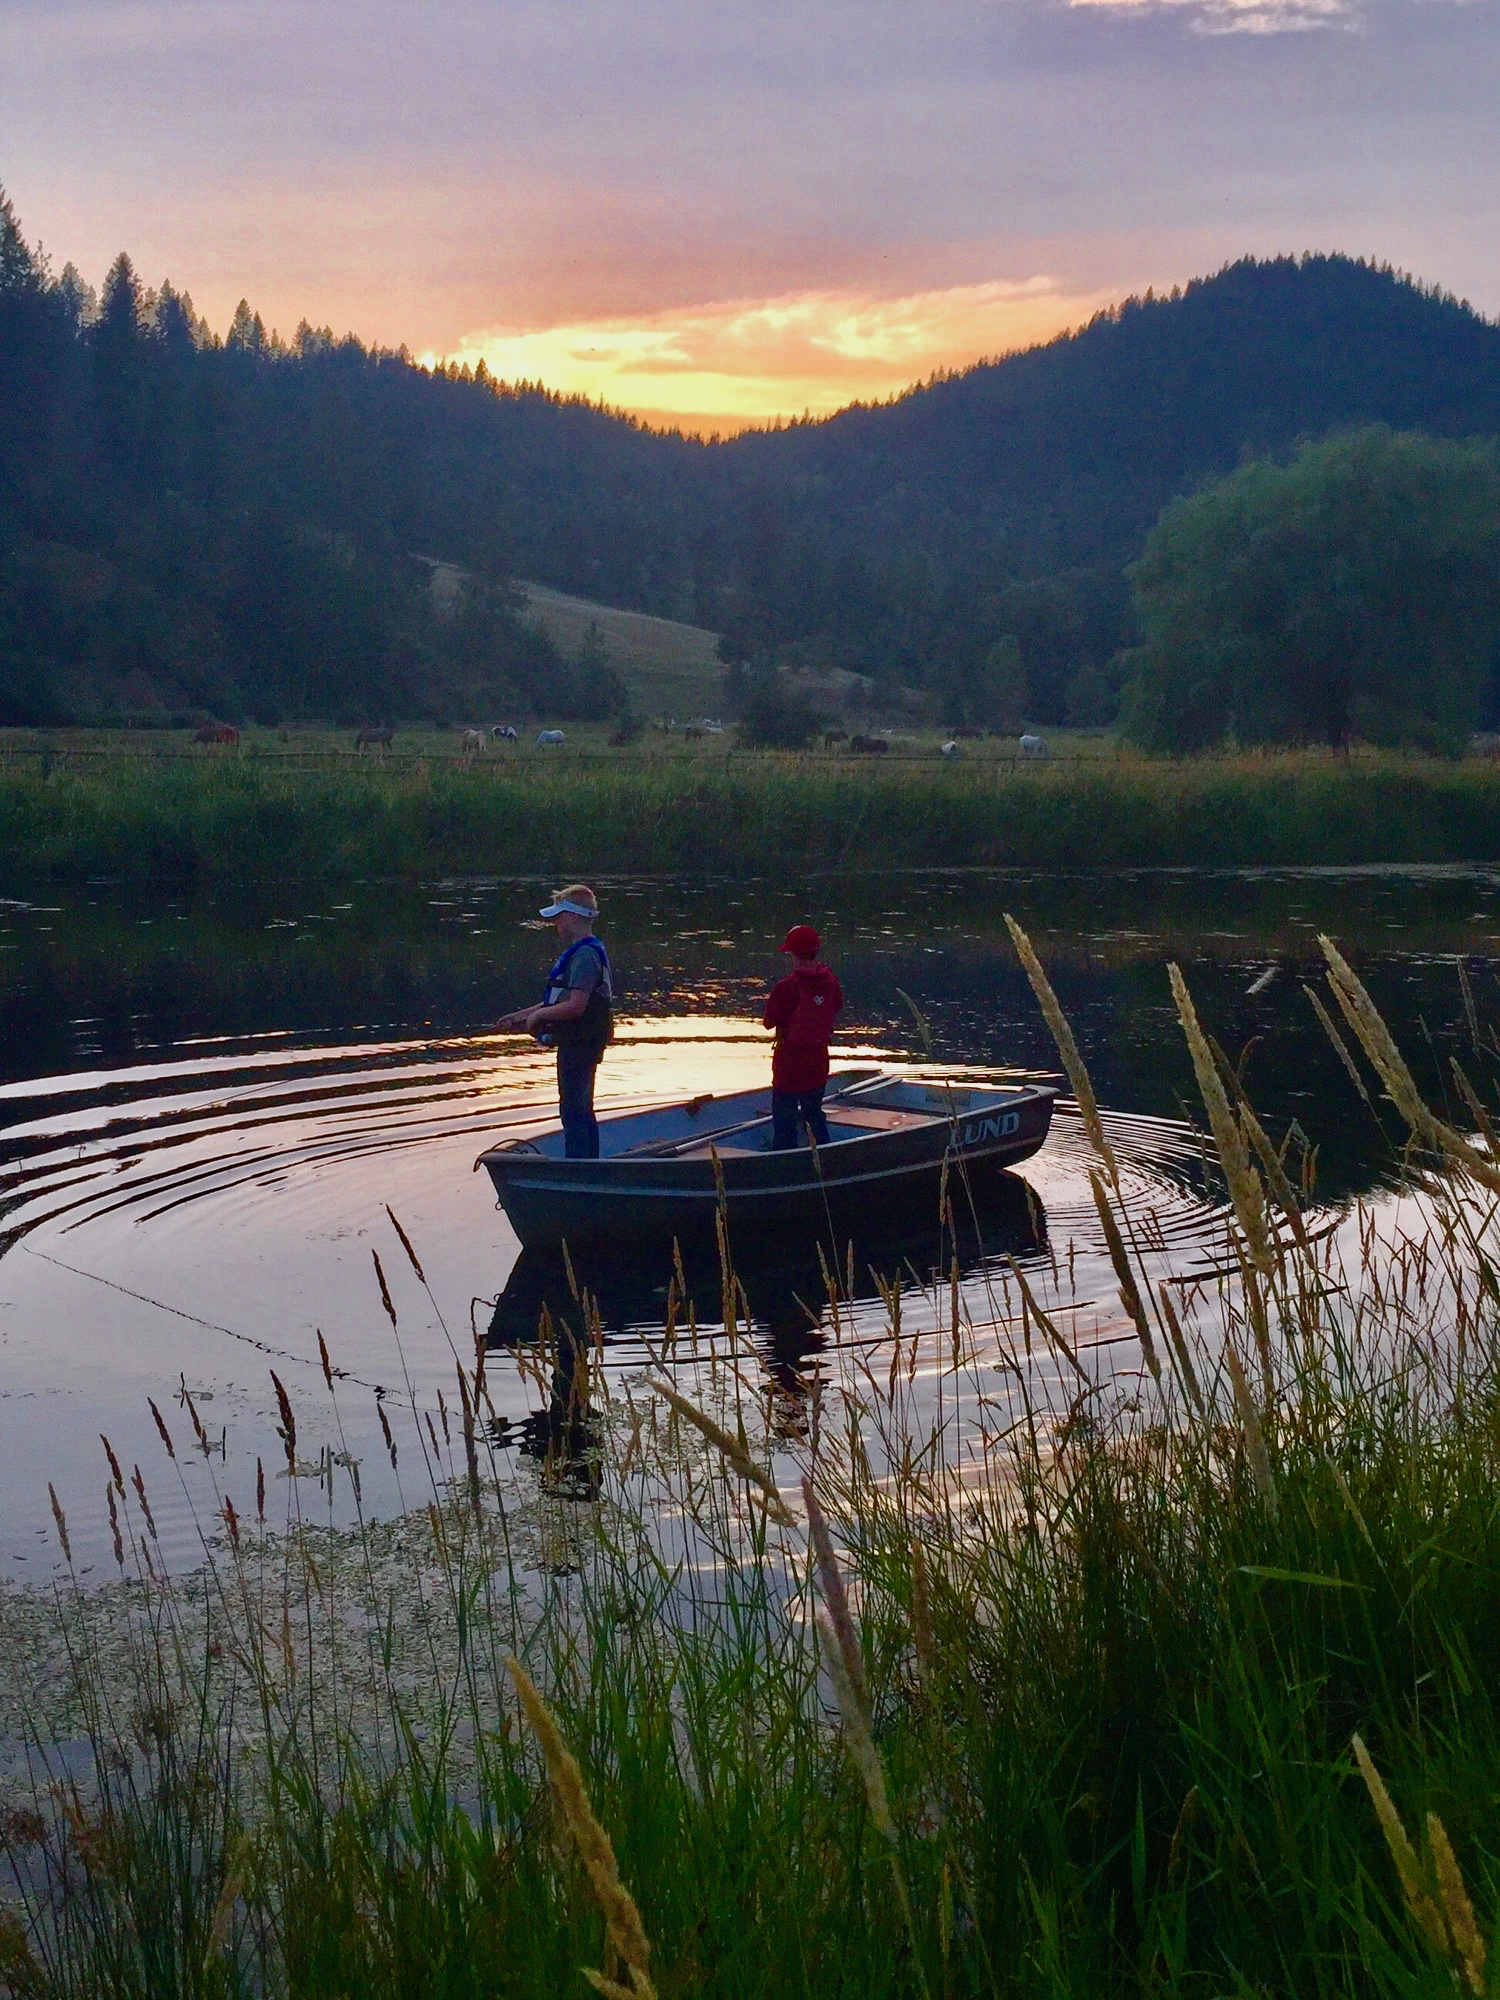 Two people pond fishing at sunrise.